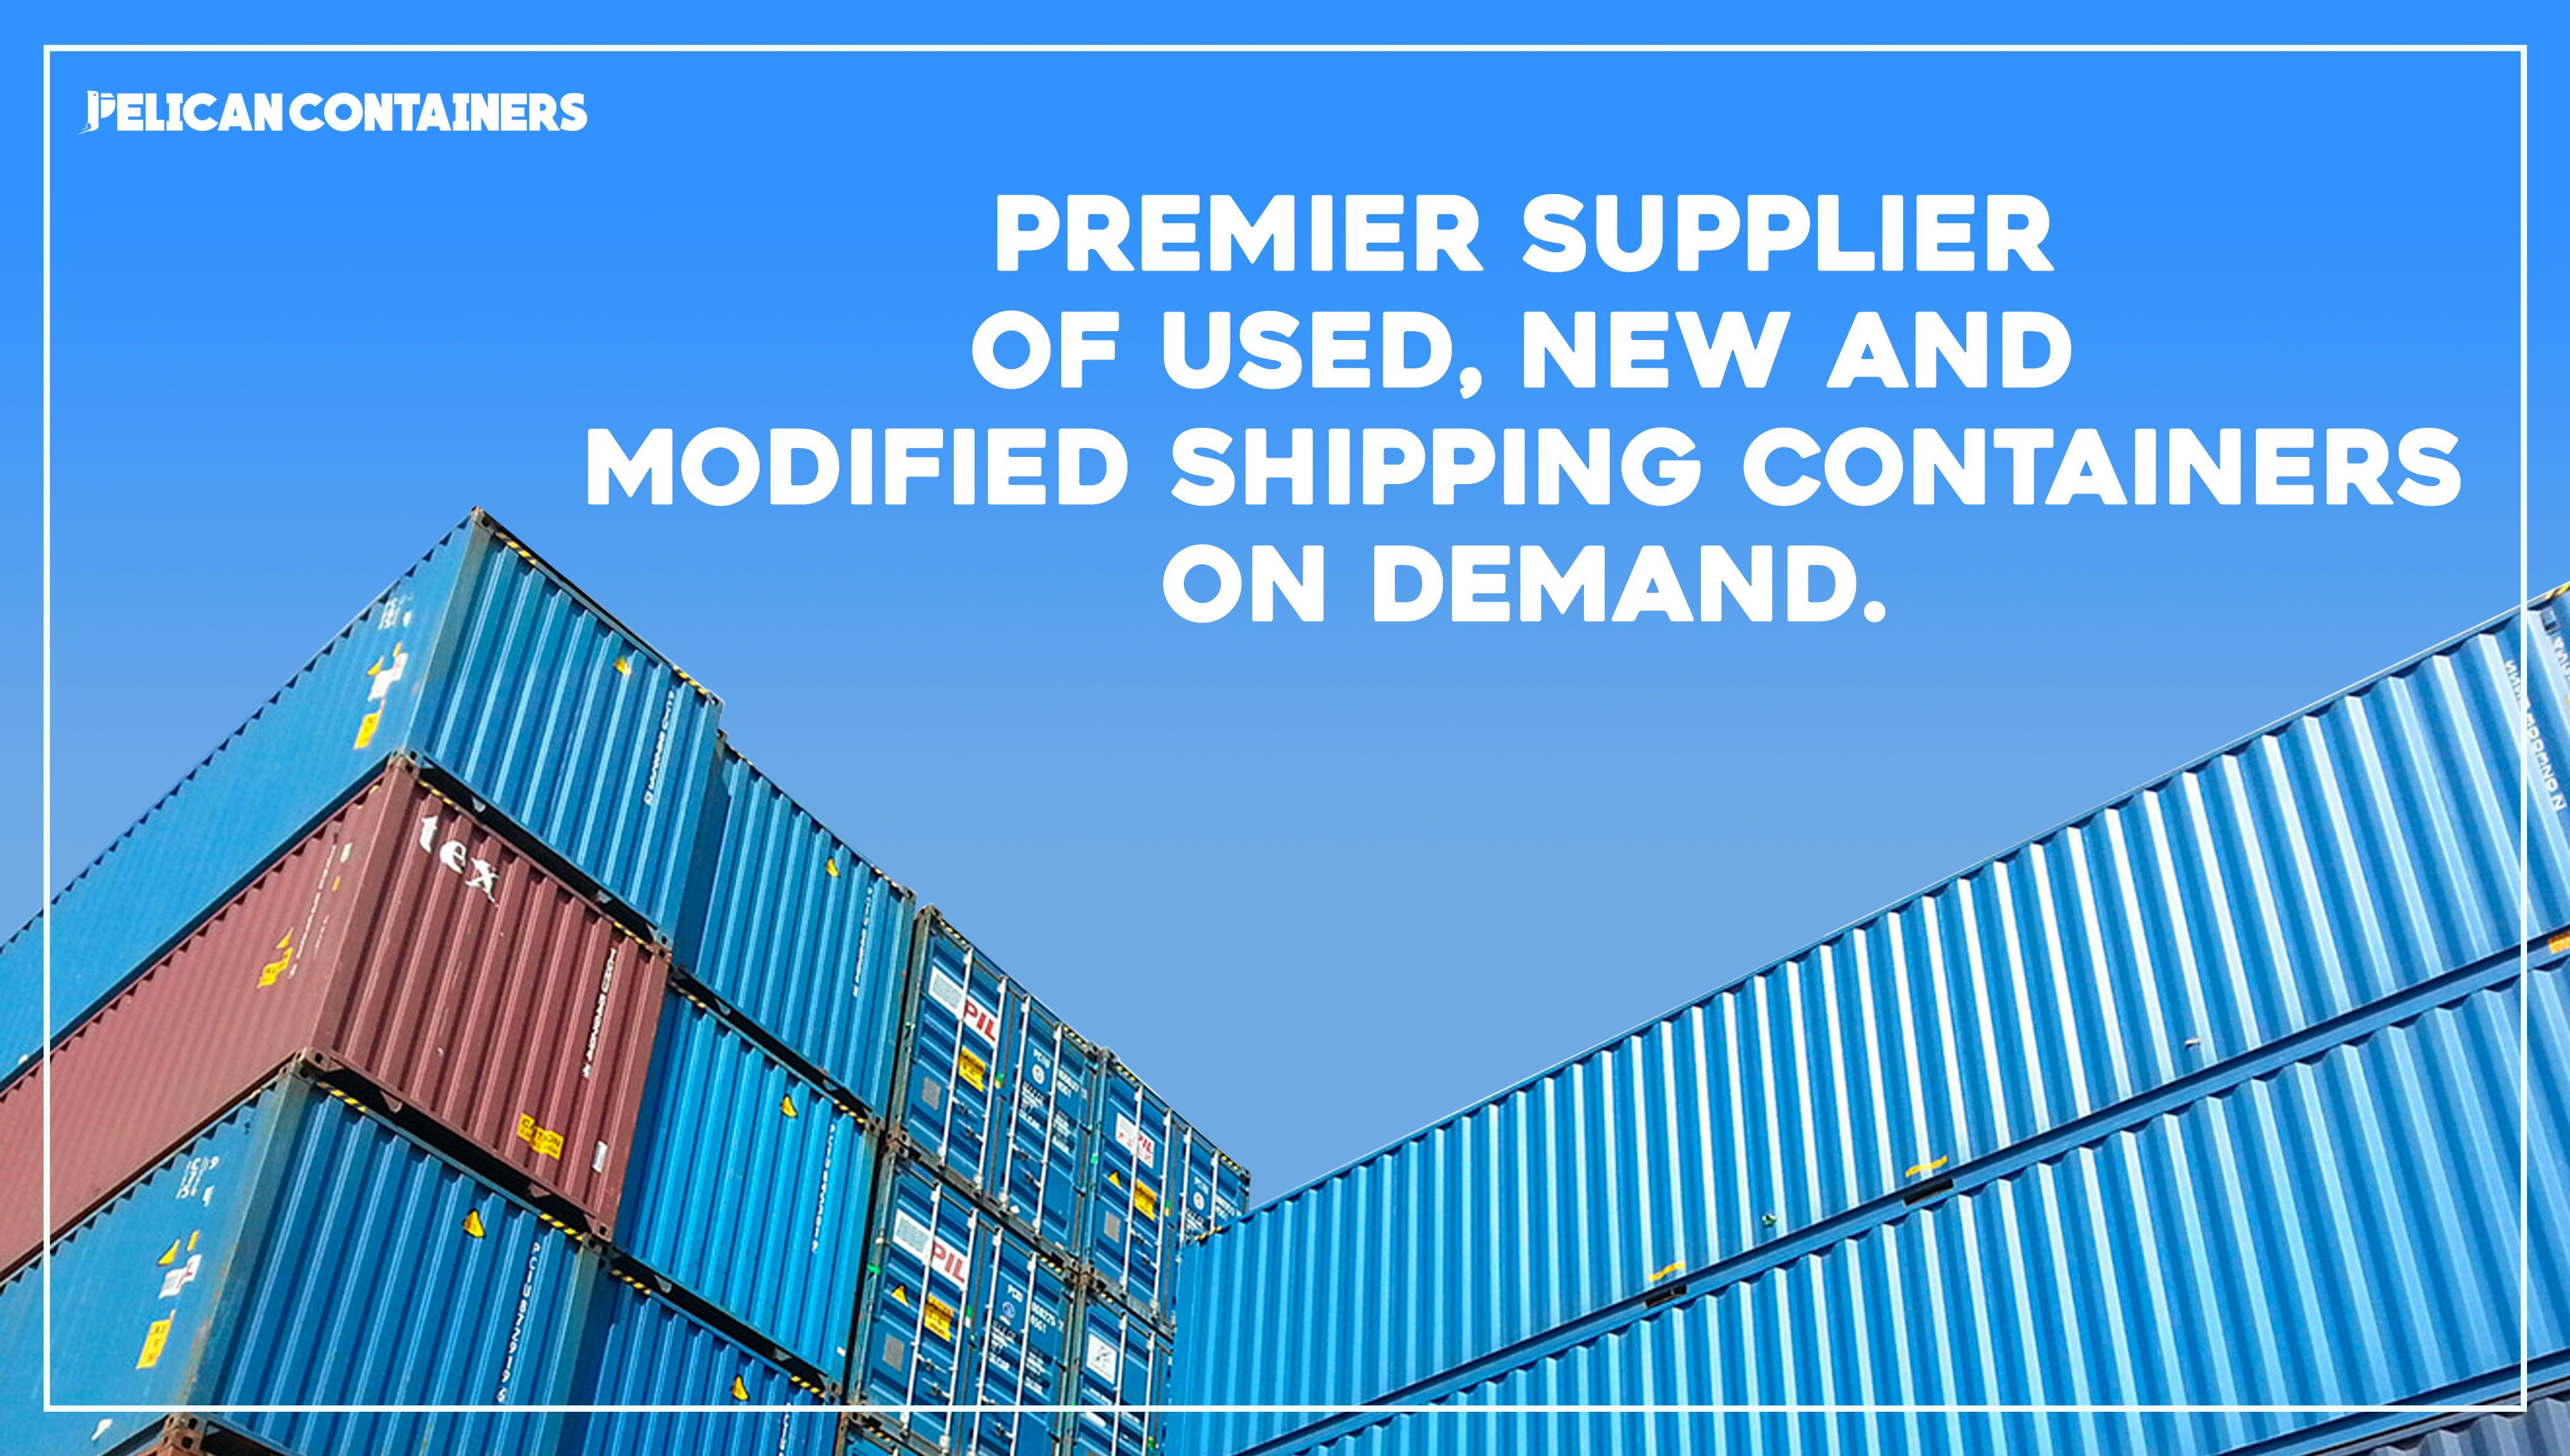 Pelican Containers  Premier Supplier Of Used, New And Modified